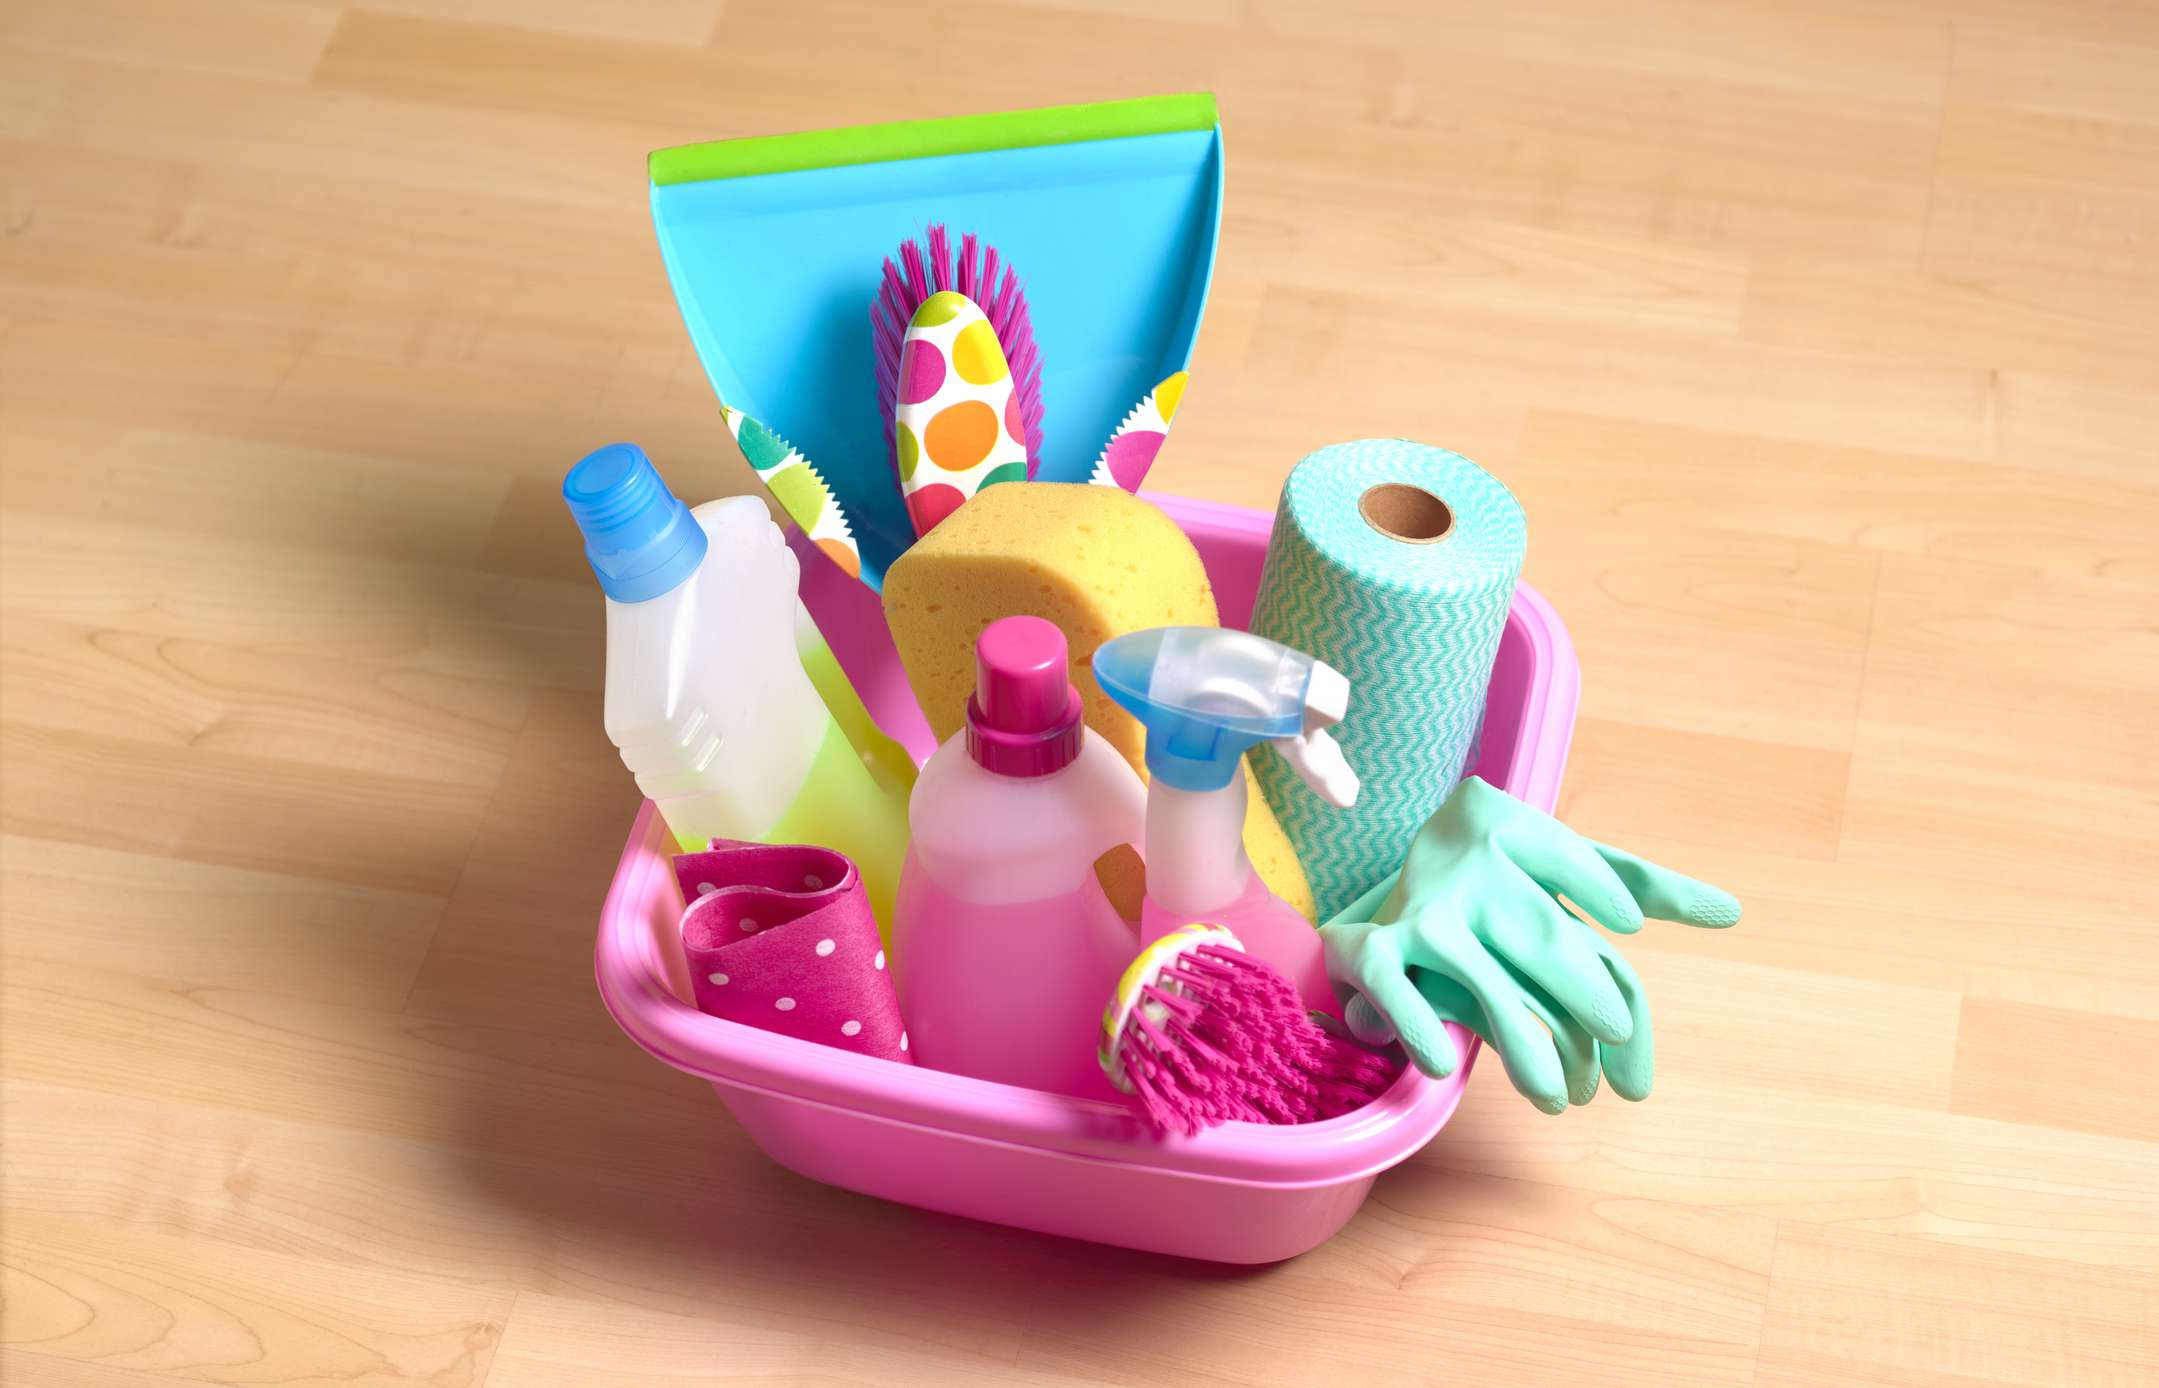 A pink shower caddy filled with cleaning supplies.